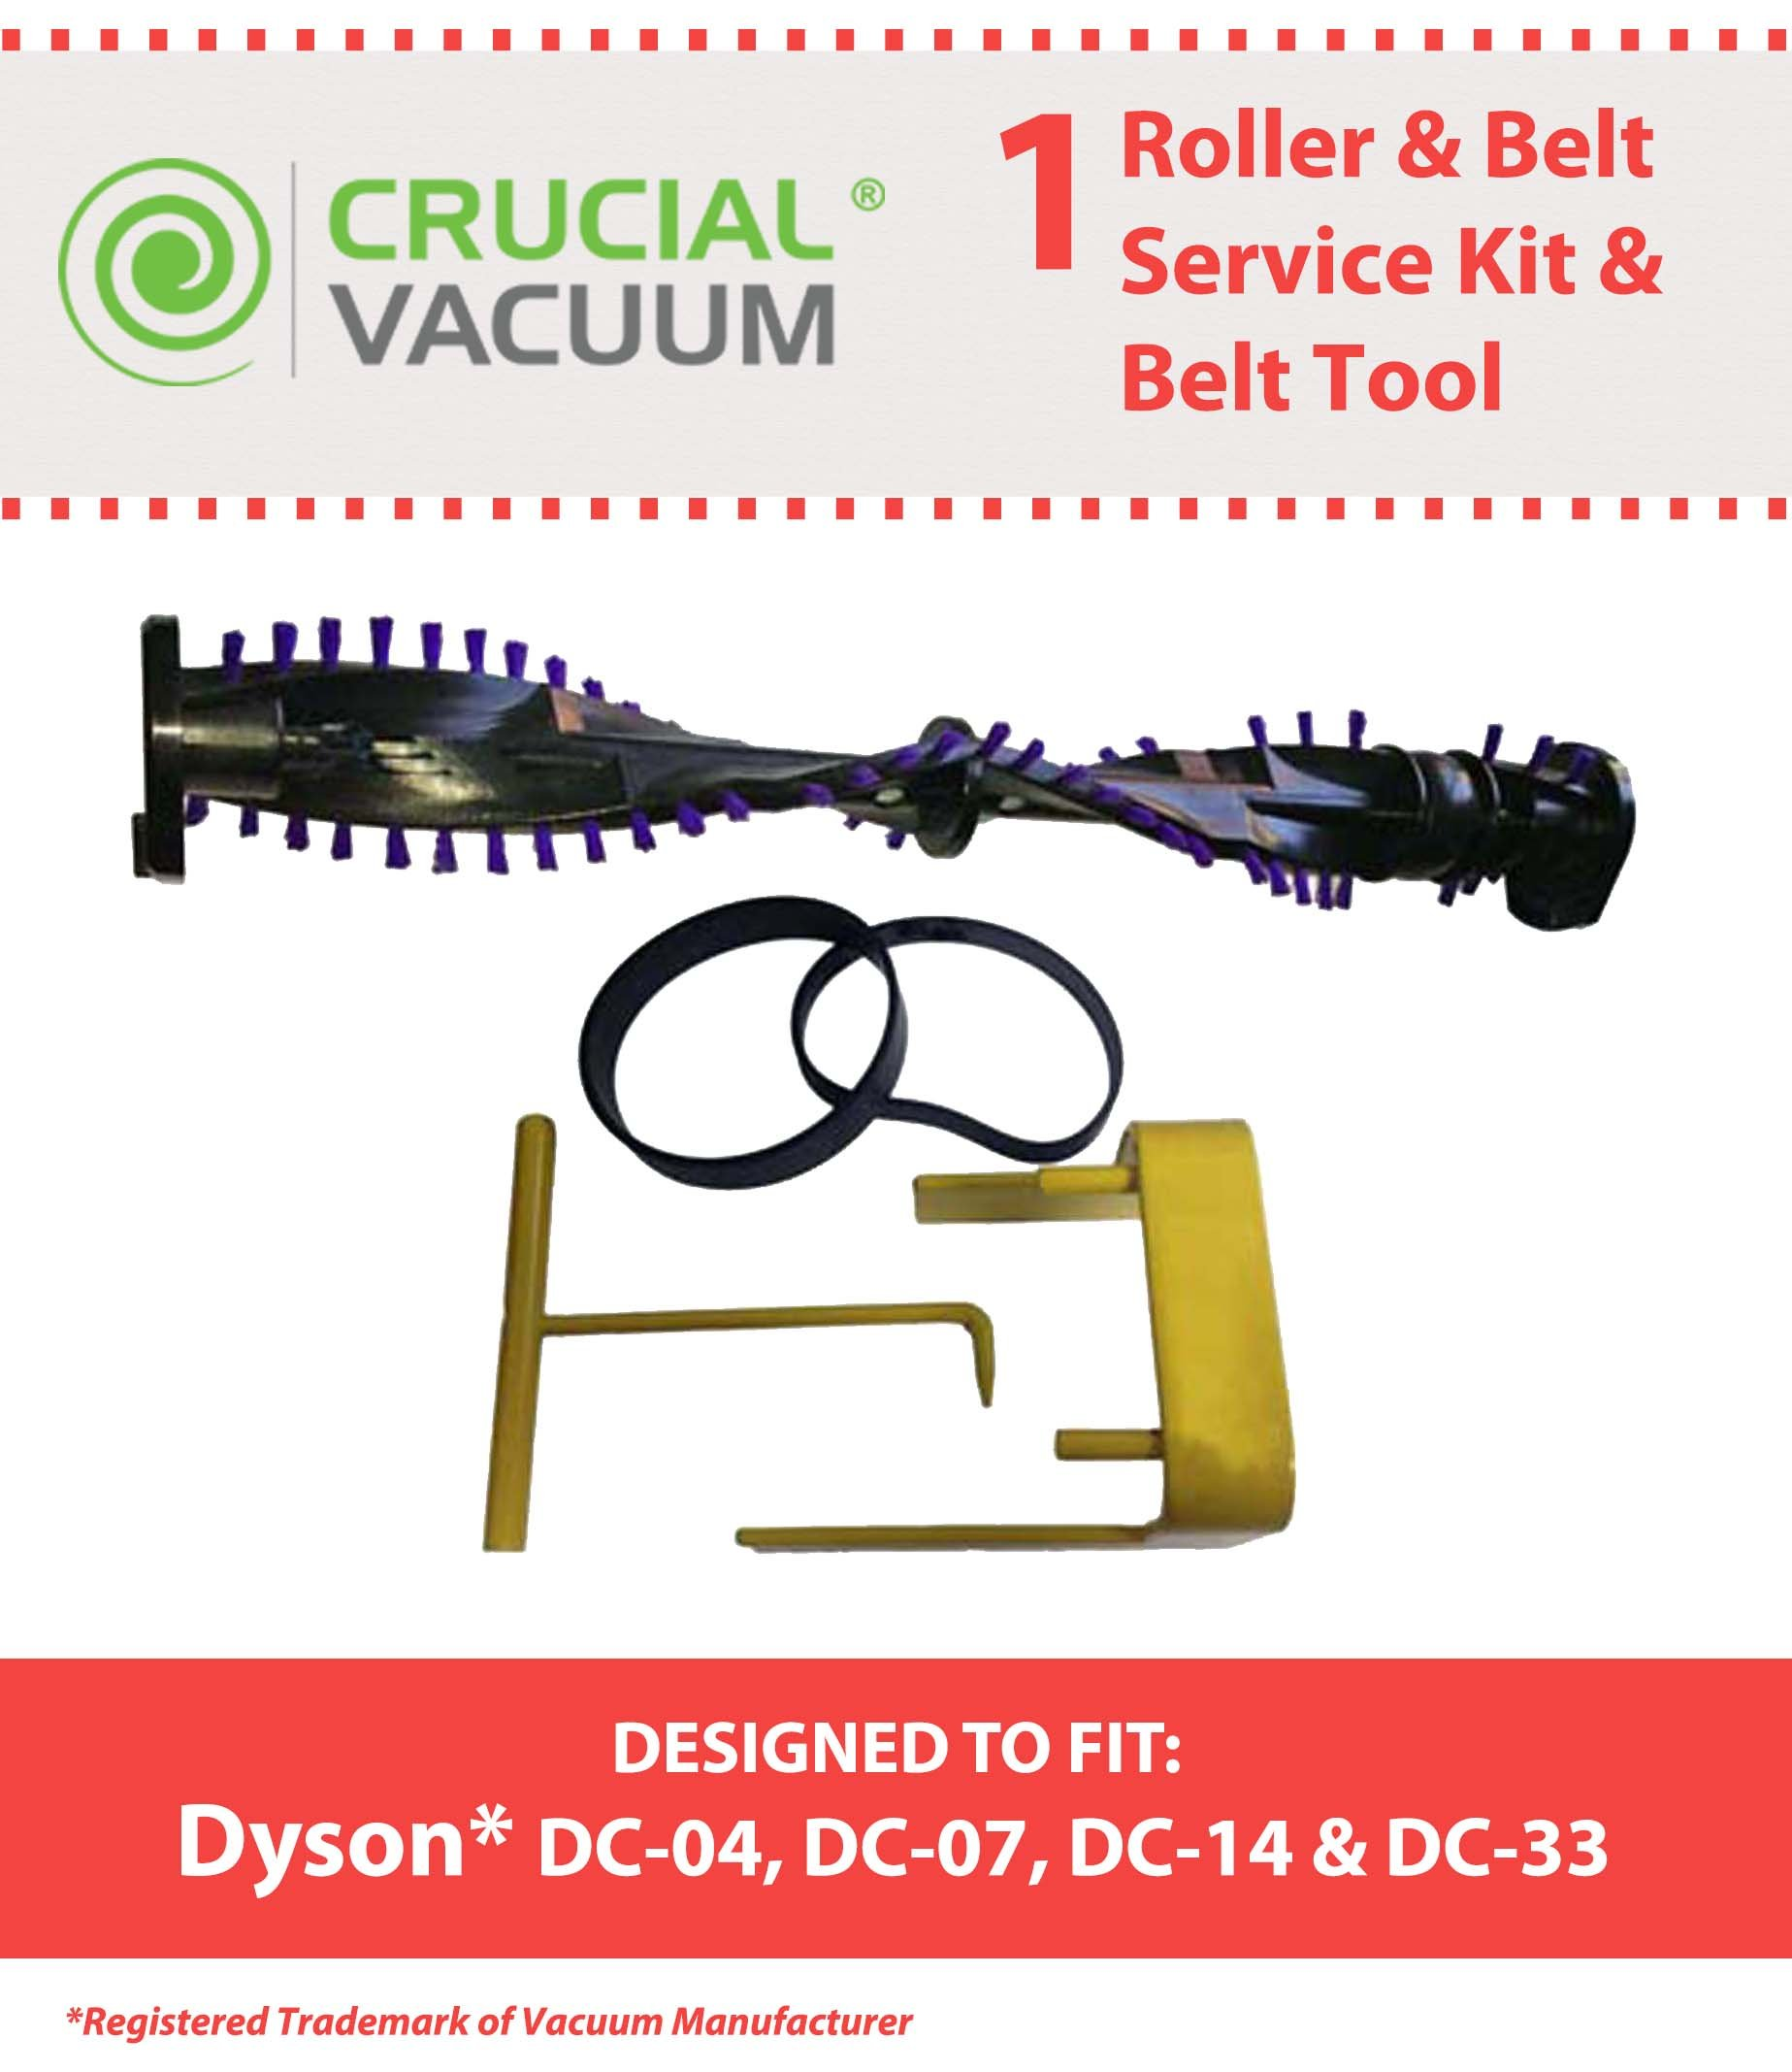 Think Crucial Replacement for Dyson DC04, DC07, DC14 & DC33 Roller, Belt Set & Change Tool, Compatible With Part # 904174-01, 05361-01-02, 02514-01-01 & 10-10000-08